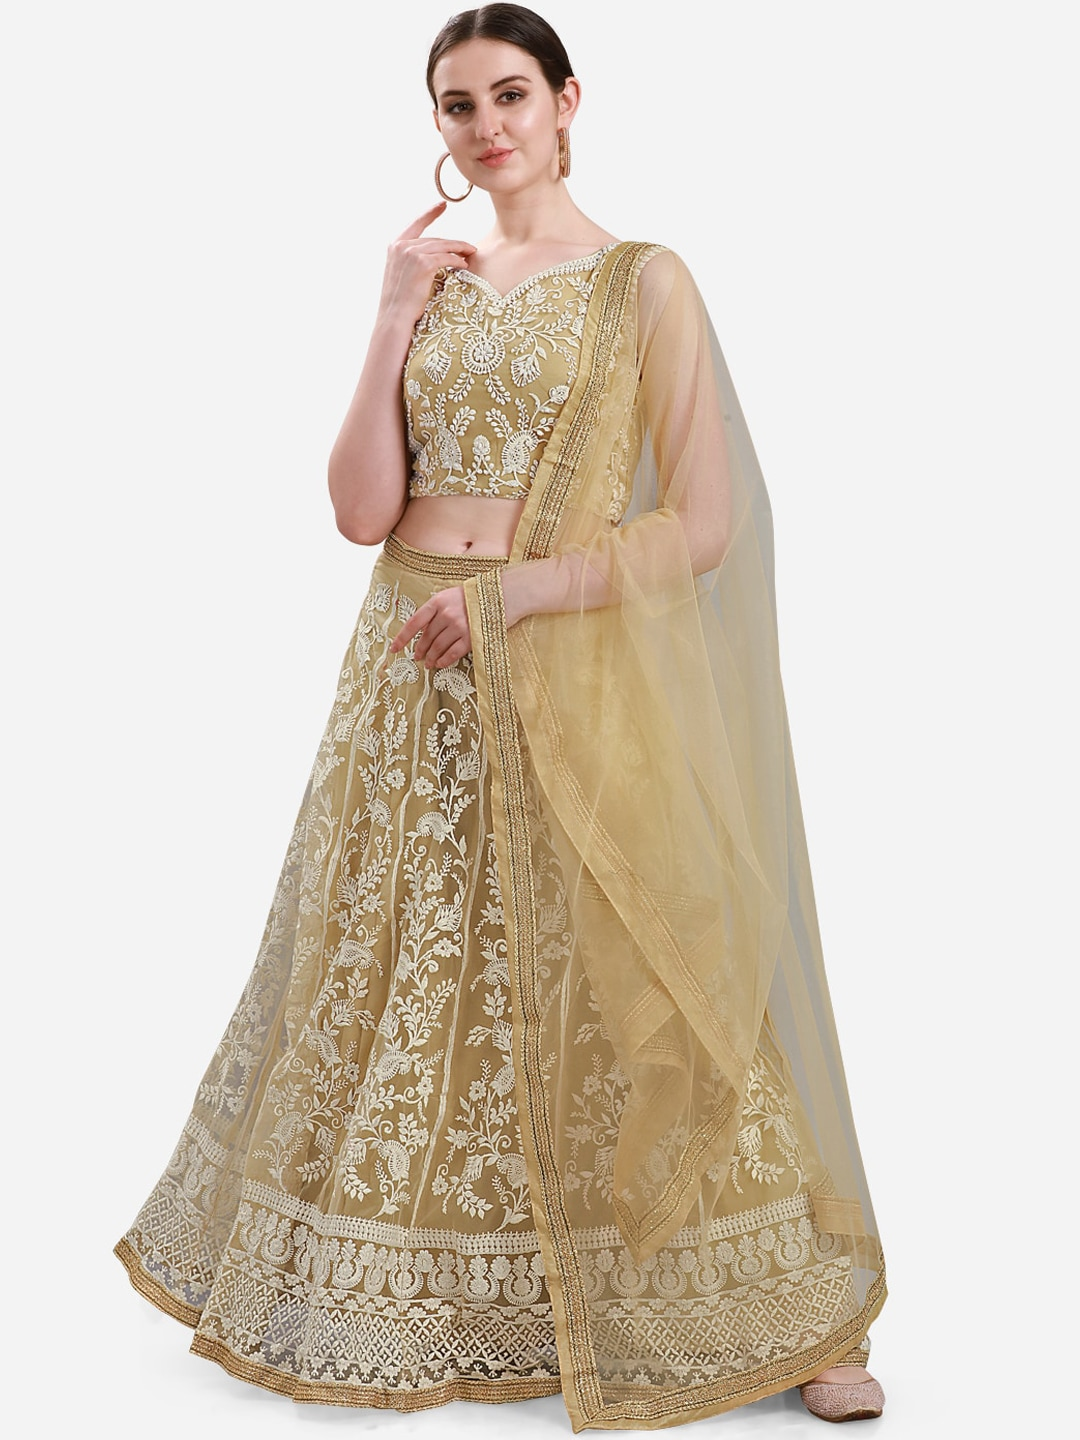 Mitera Beige & Off-White Ready to Wear Lehenga & Semi-Stitched Blouse with Dupatta